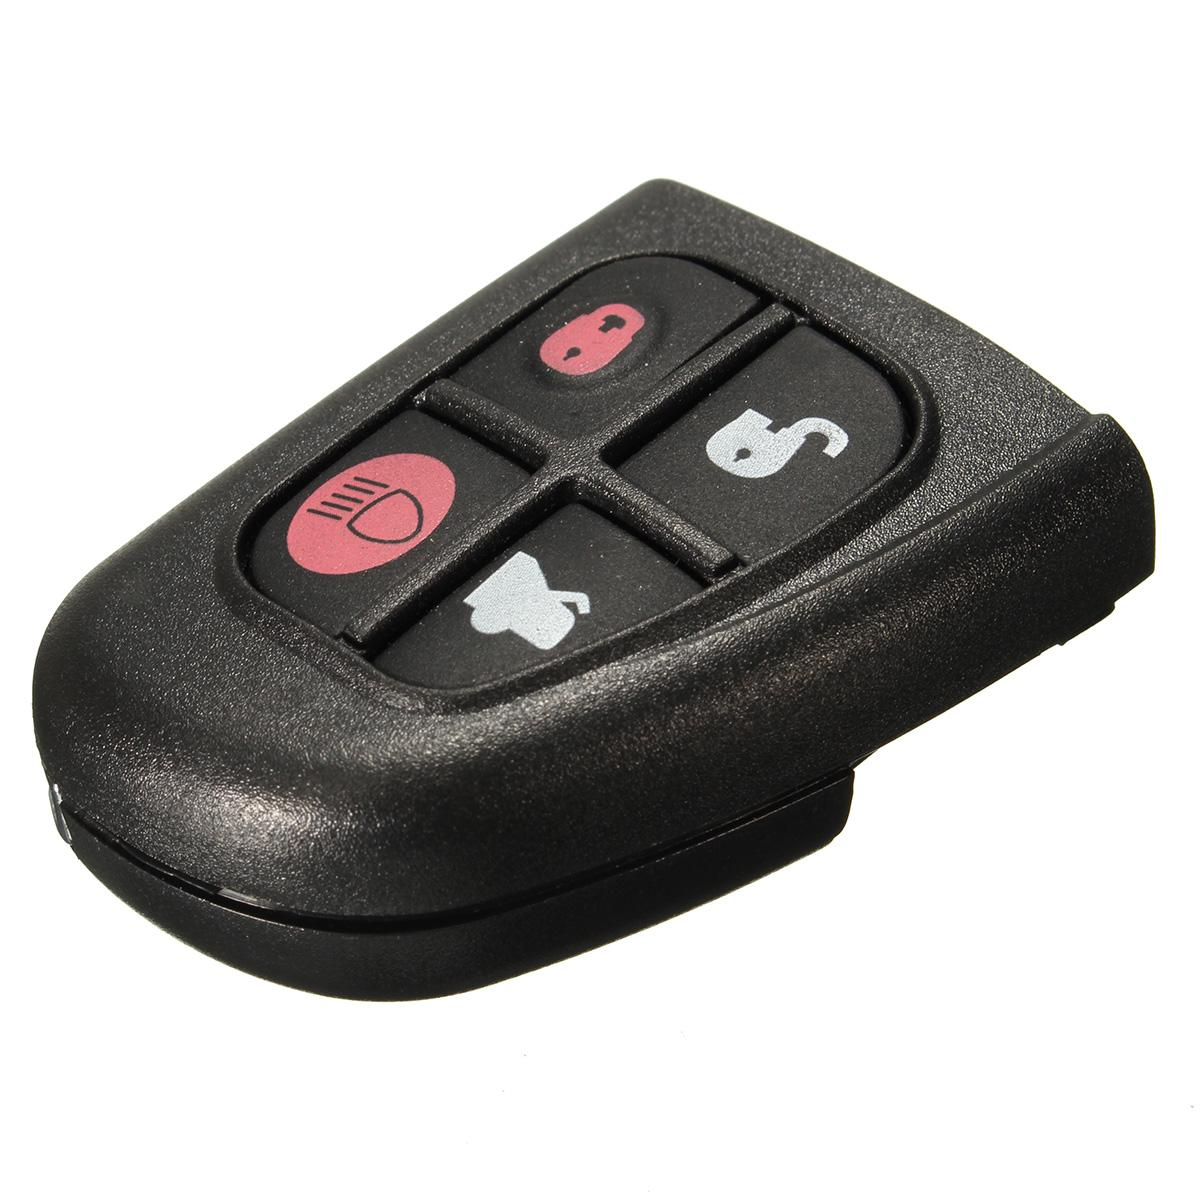 4 Buttons Remote Key FOB With Circuit Board Repair For Jaguar XJ XJR X S  Type